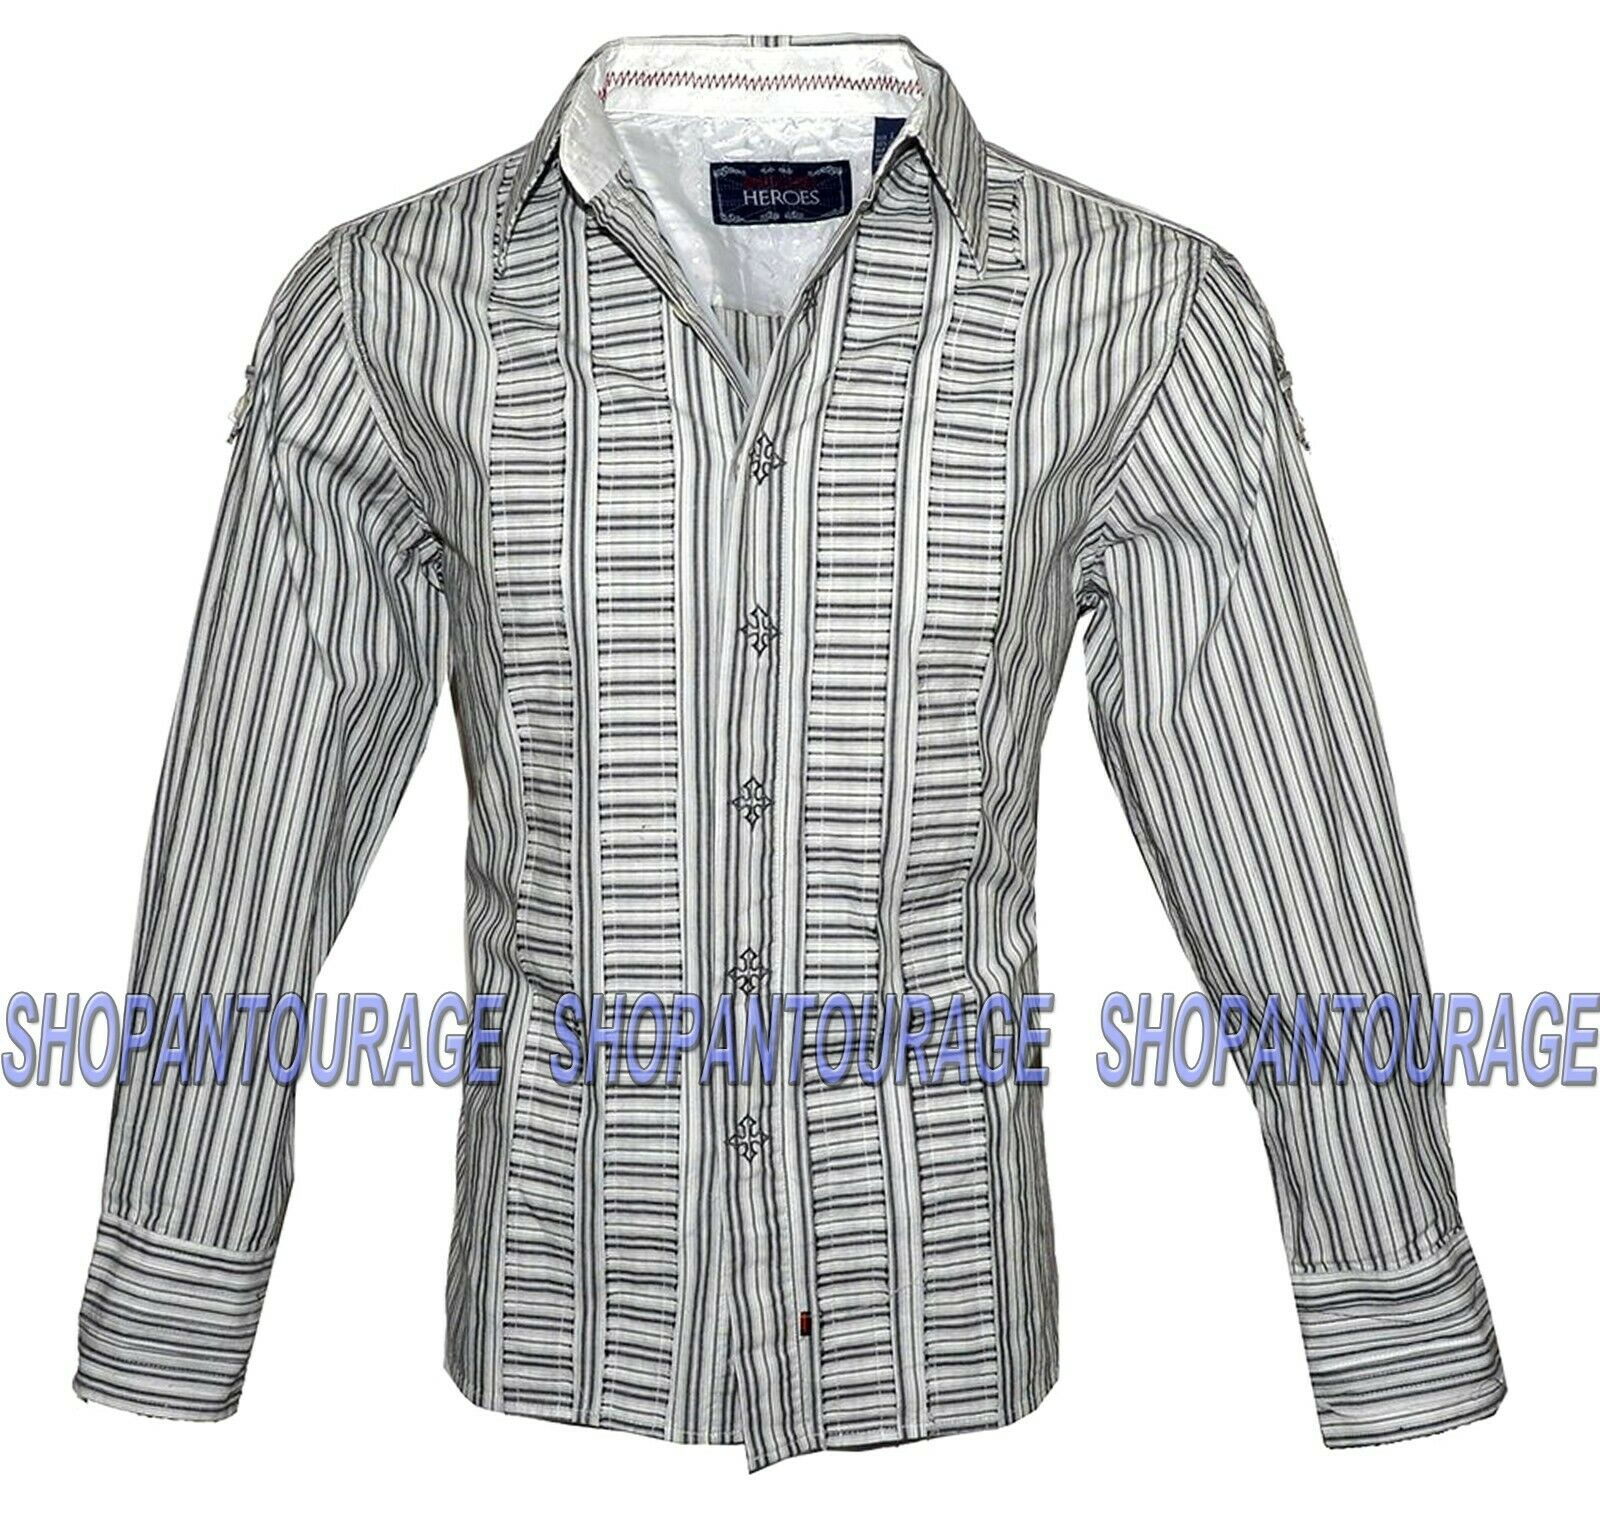 English Heroes EHW117W Long Sleeve Button Down White Striped Woven Shirt for Men